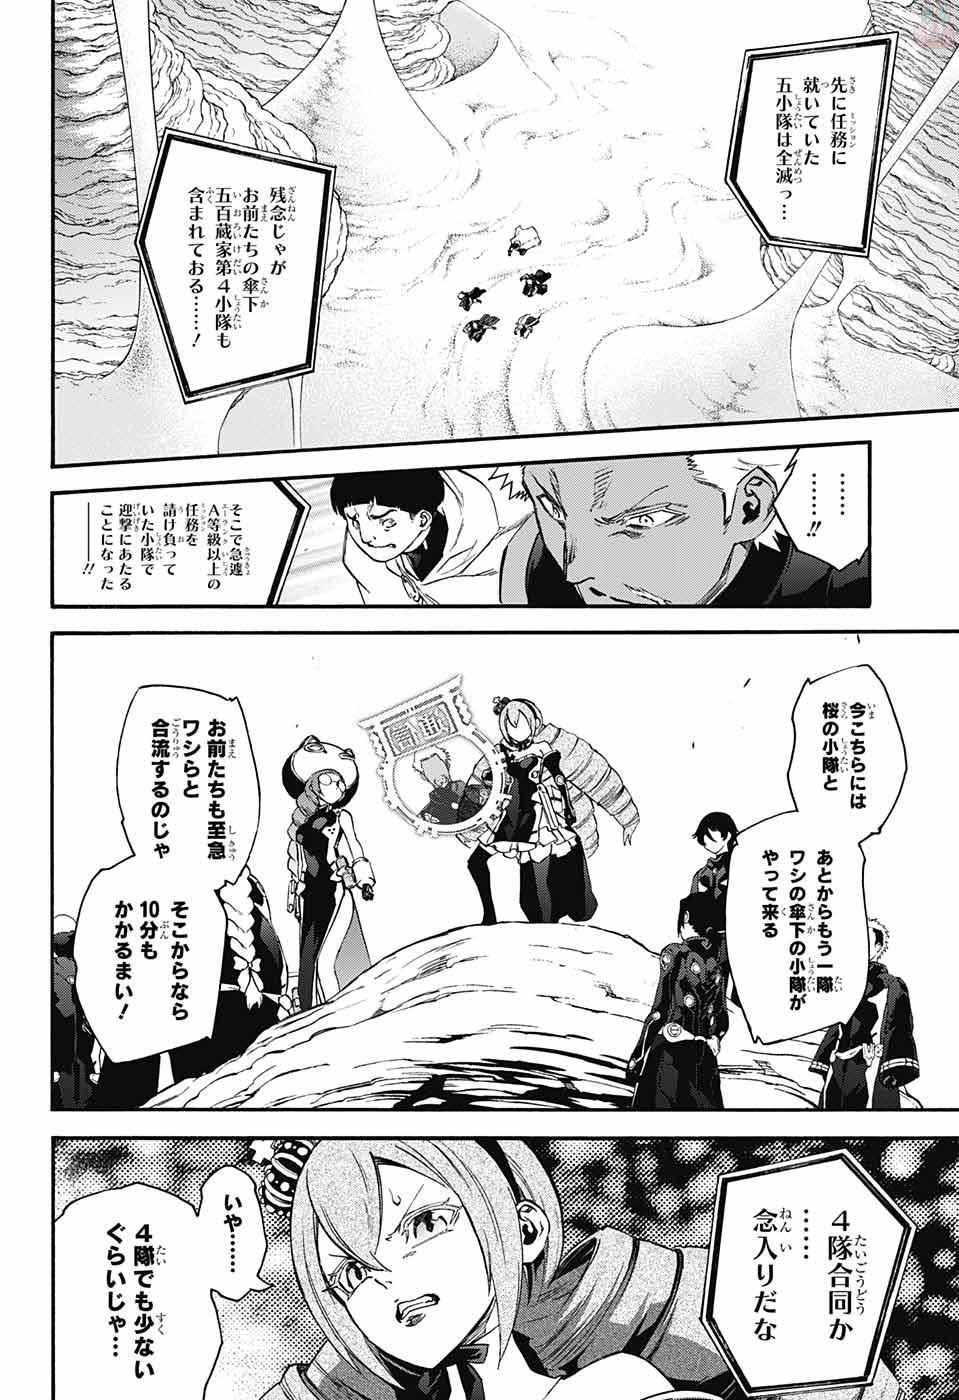 Sousei no Onmyouji - Raw Chapter 52 - LHScan net | 双星の陰陽師